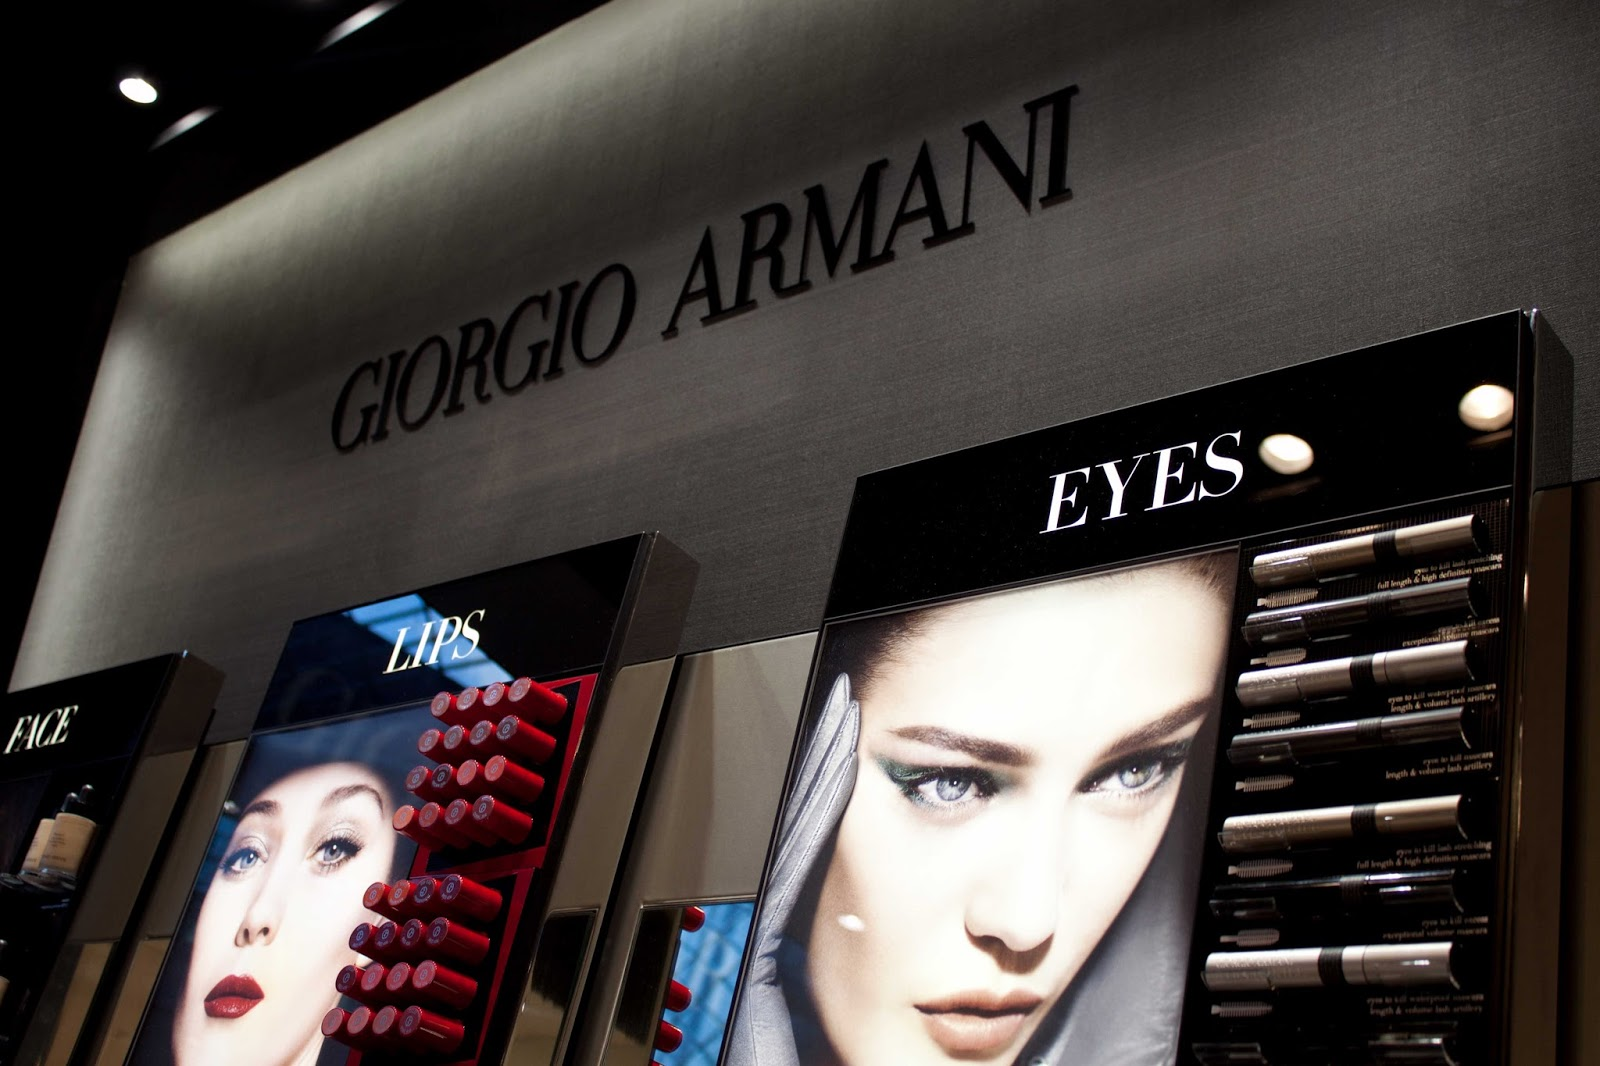 GIORGIO ARMANI BEAUTY EVENT